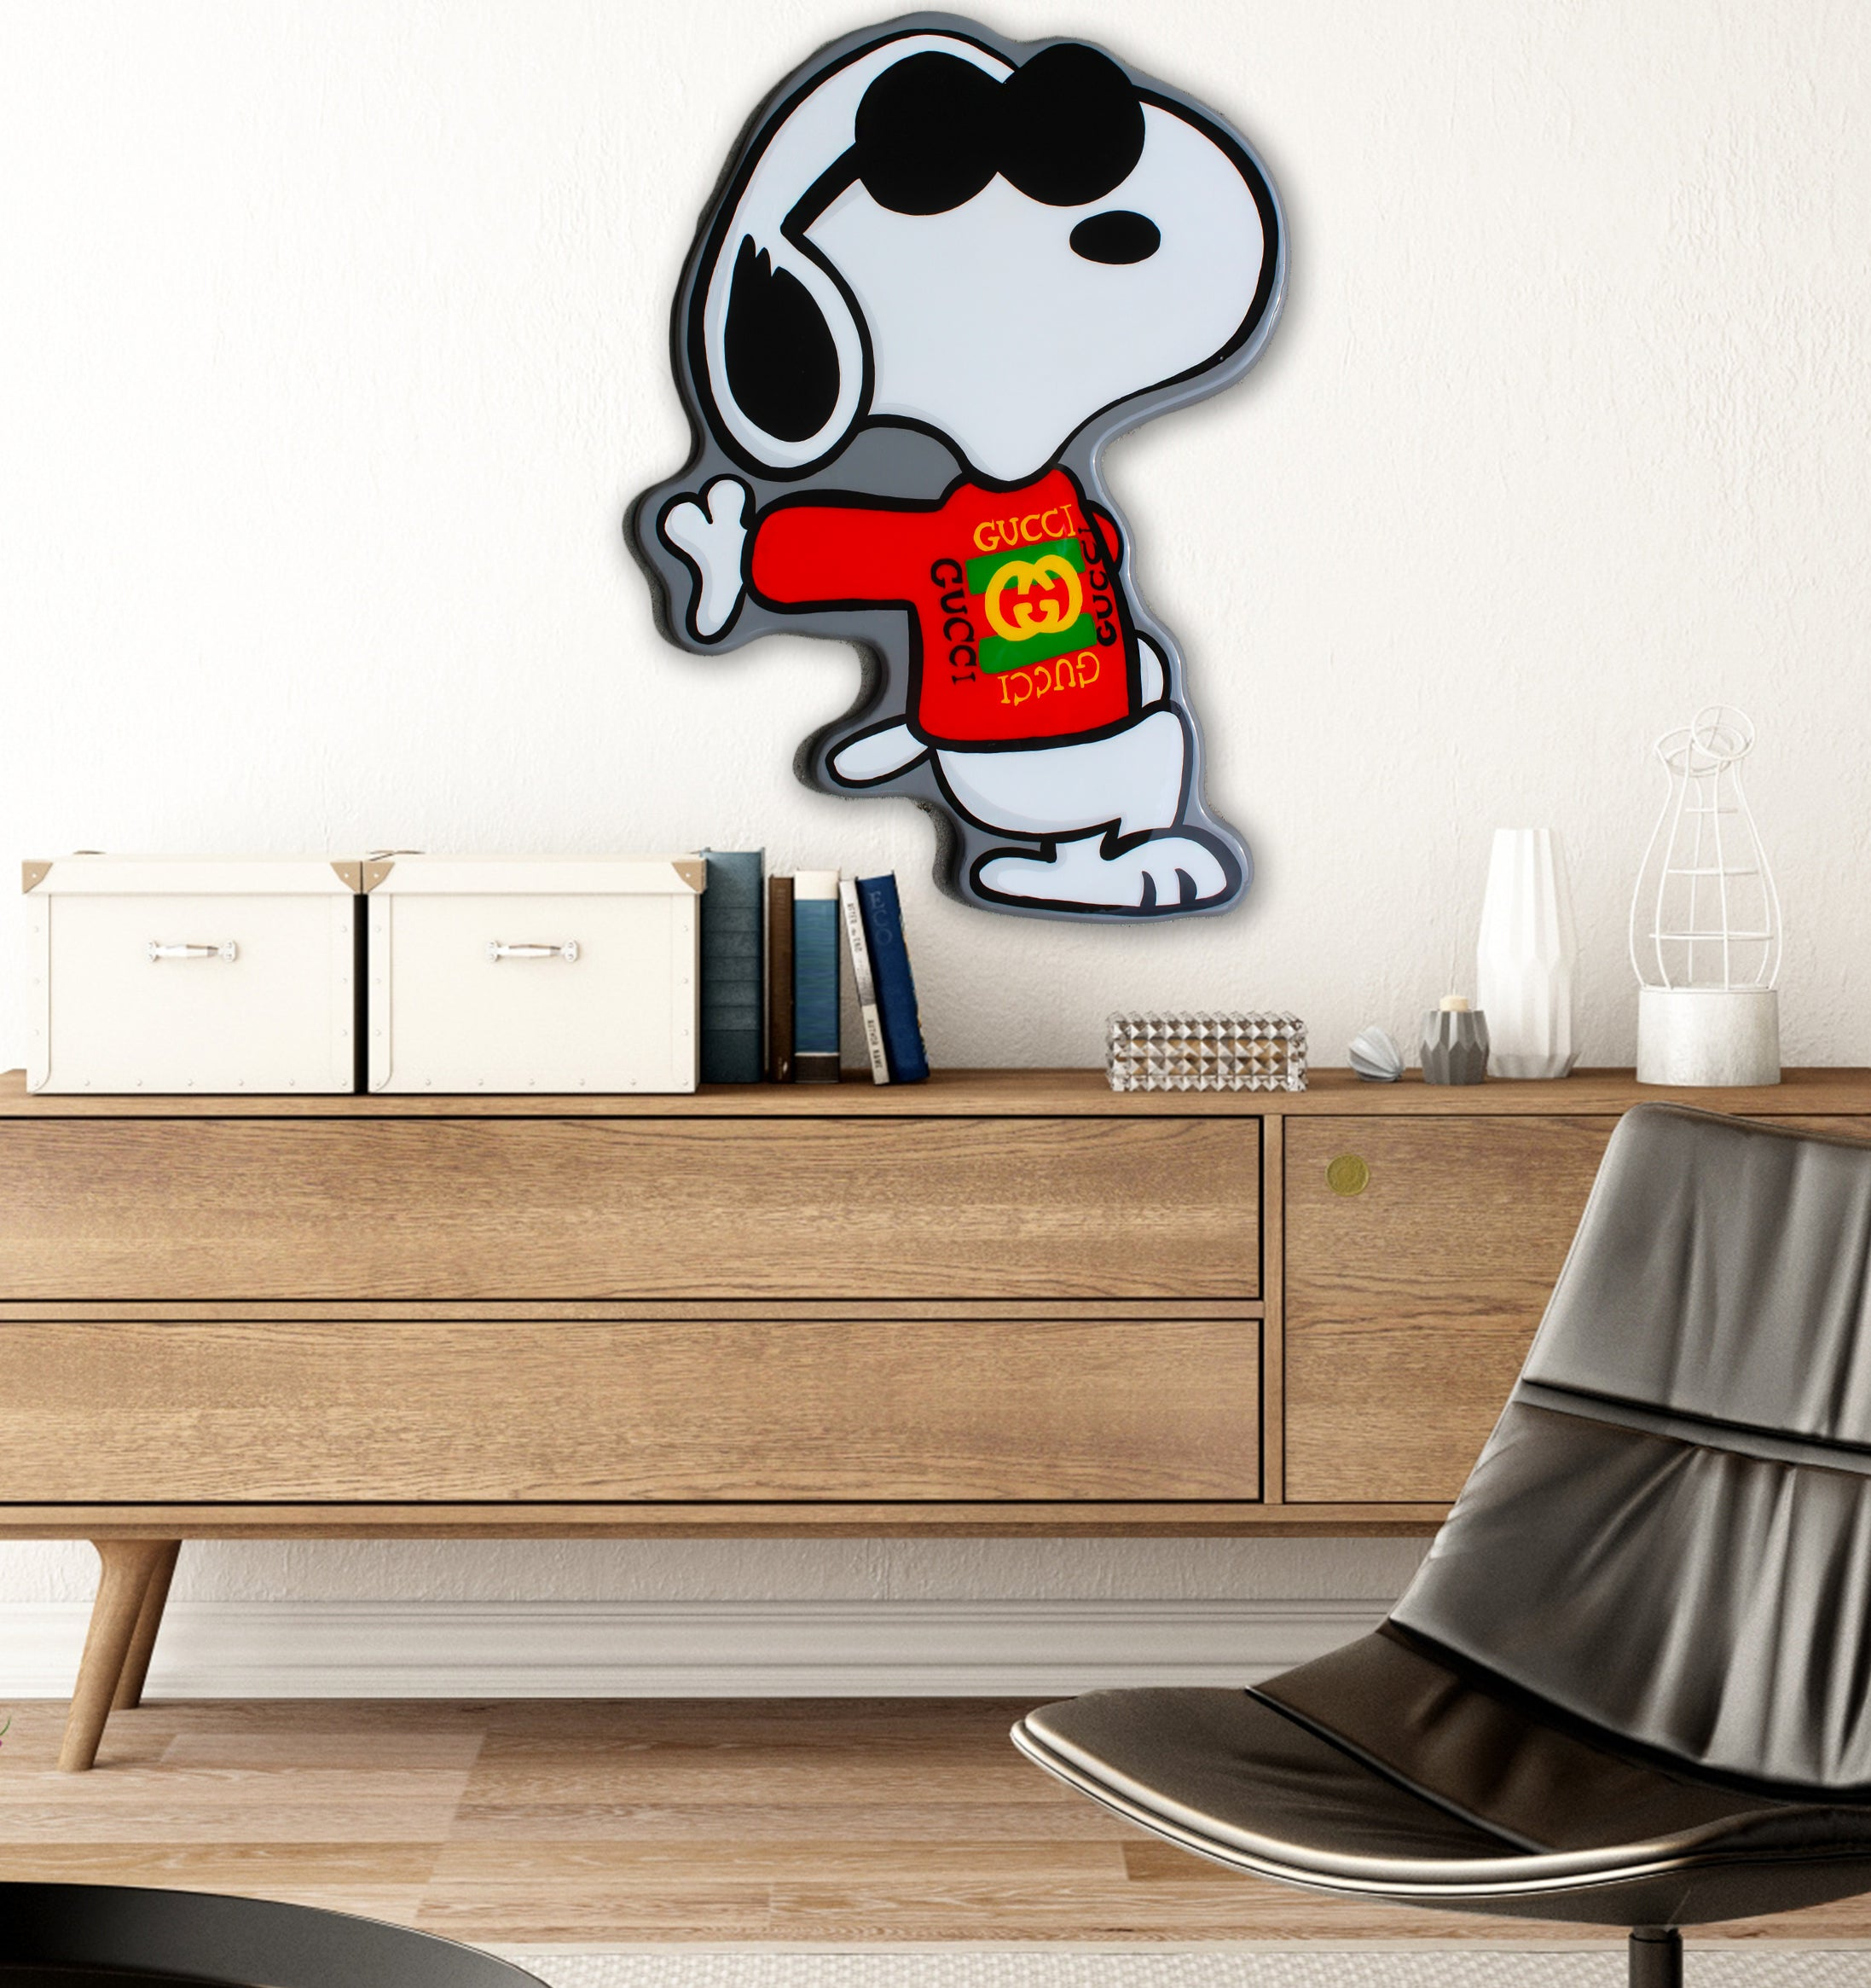 Gucci Snoopy By Idiot Box Art